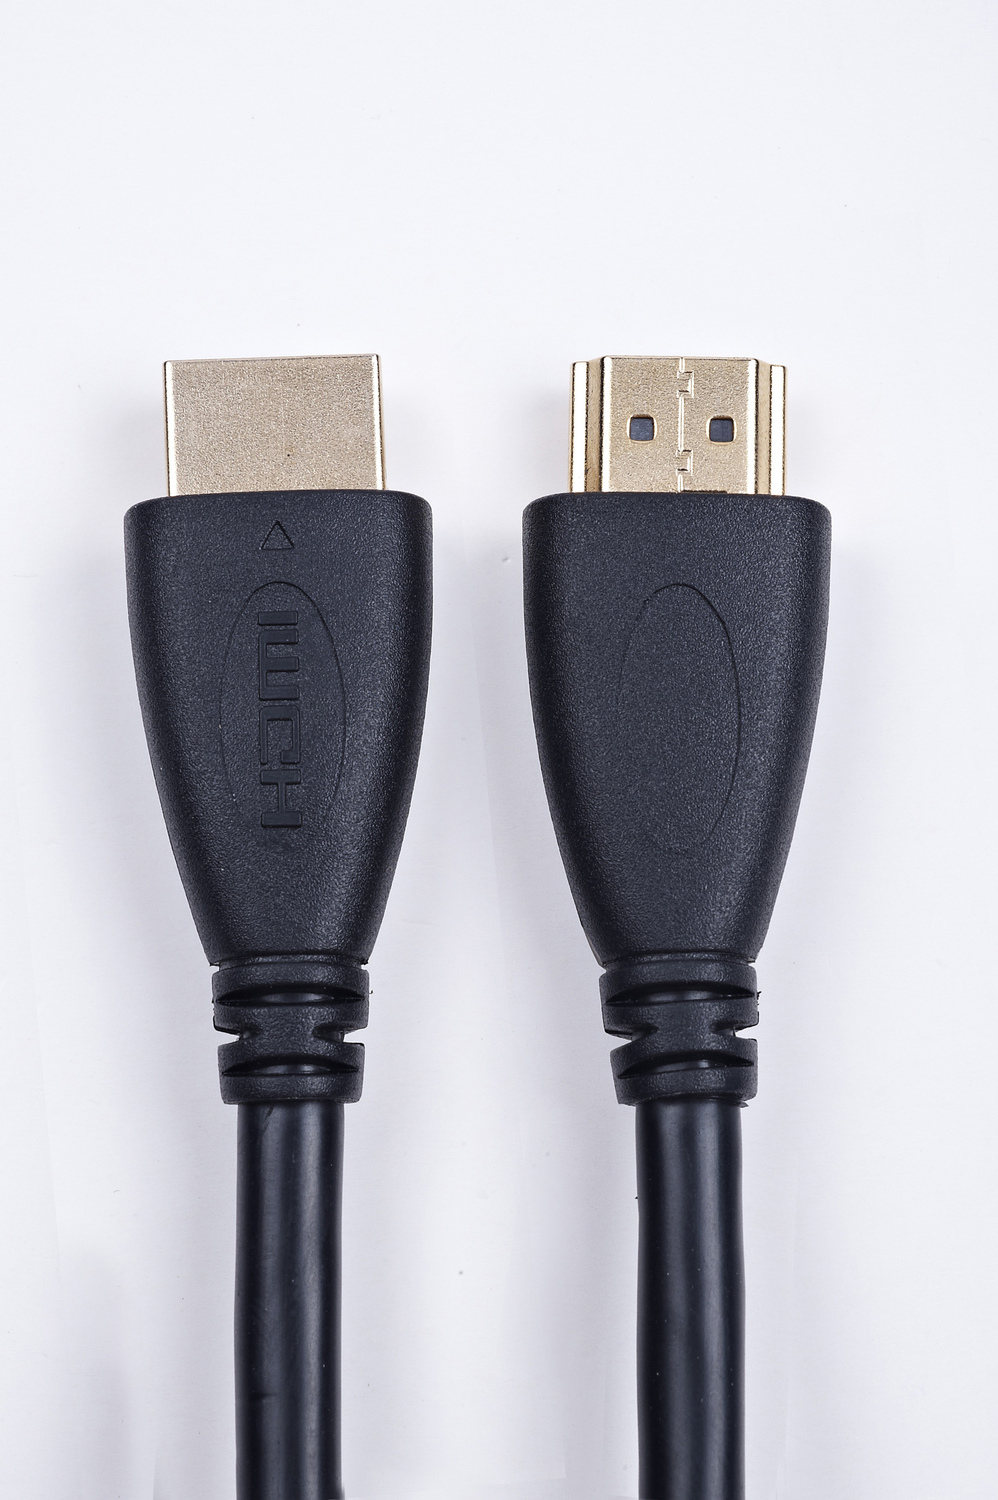 free shipping 2M 3M 5M 10M High Speed HDMI Cable with Ethernet for HDTV's, DVD players cable and satellite set top boxe(China (Mainland))